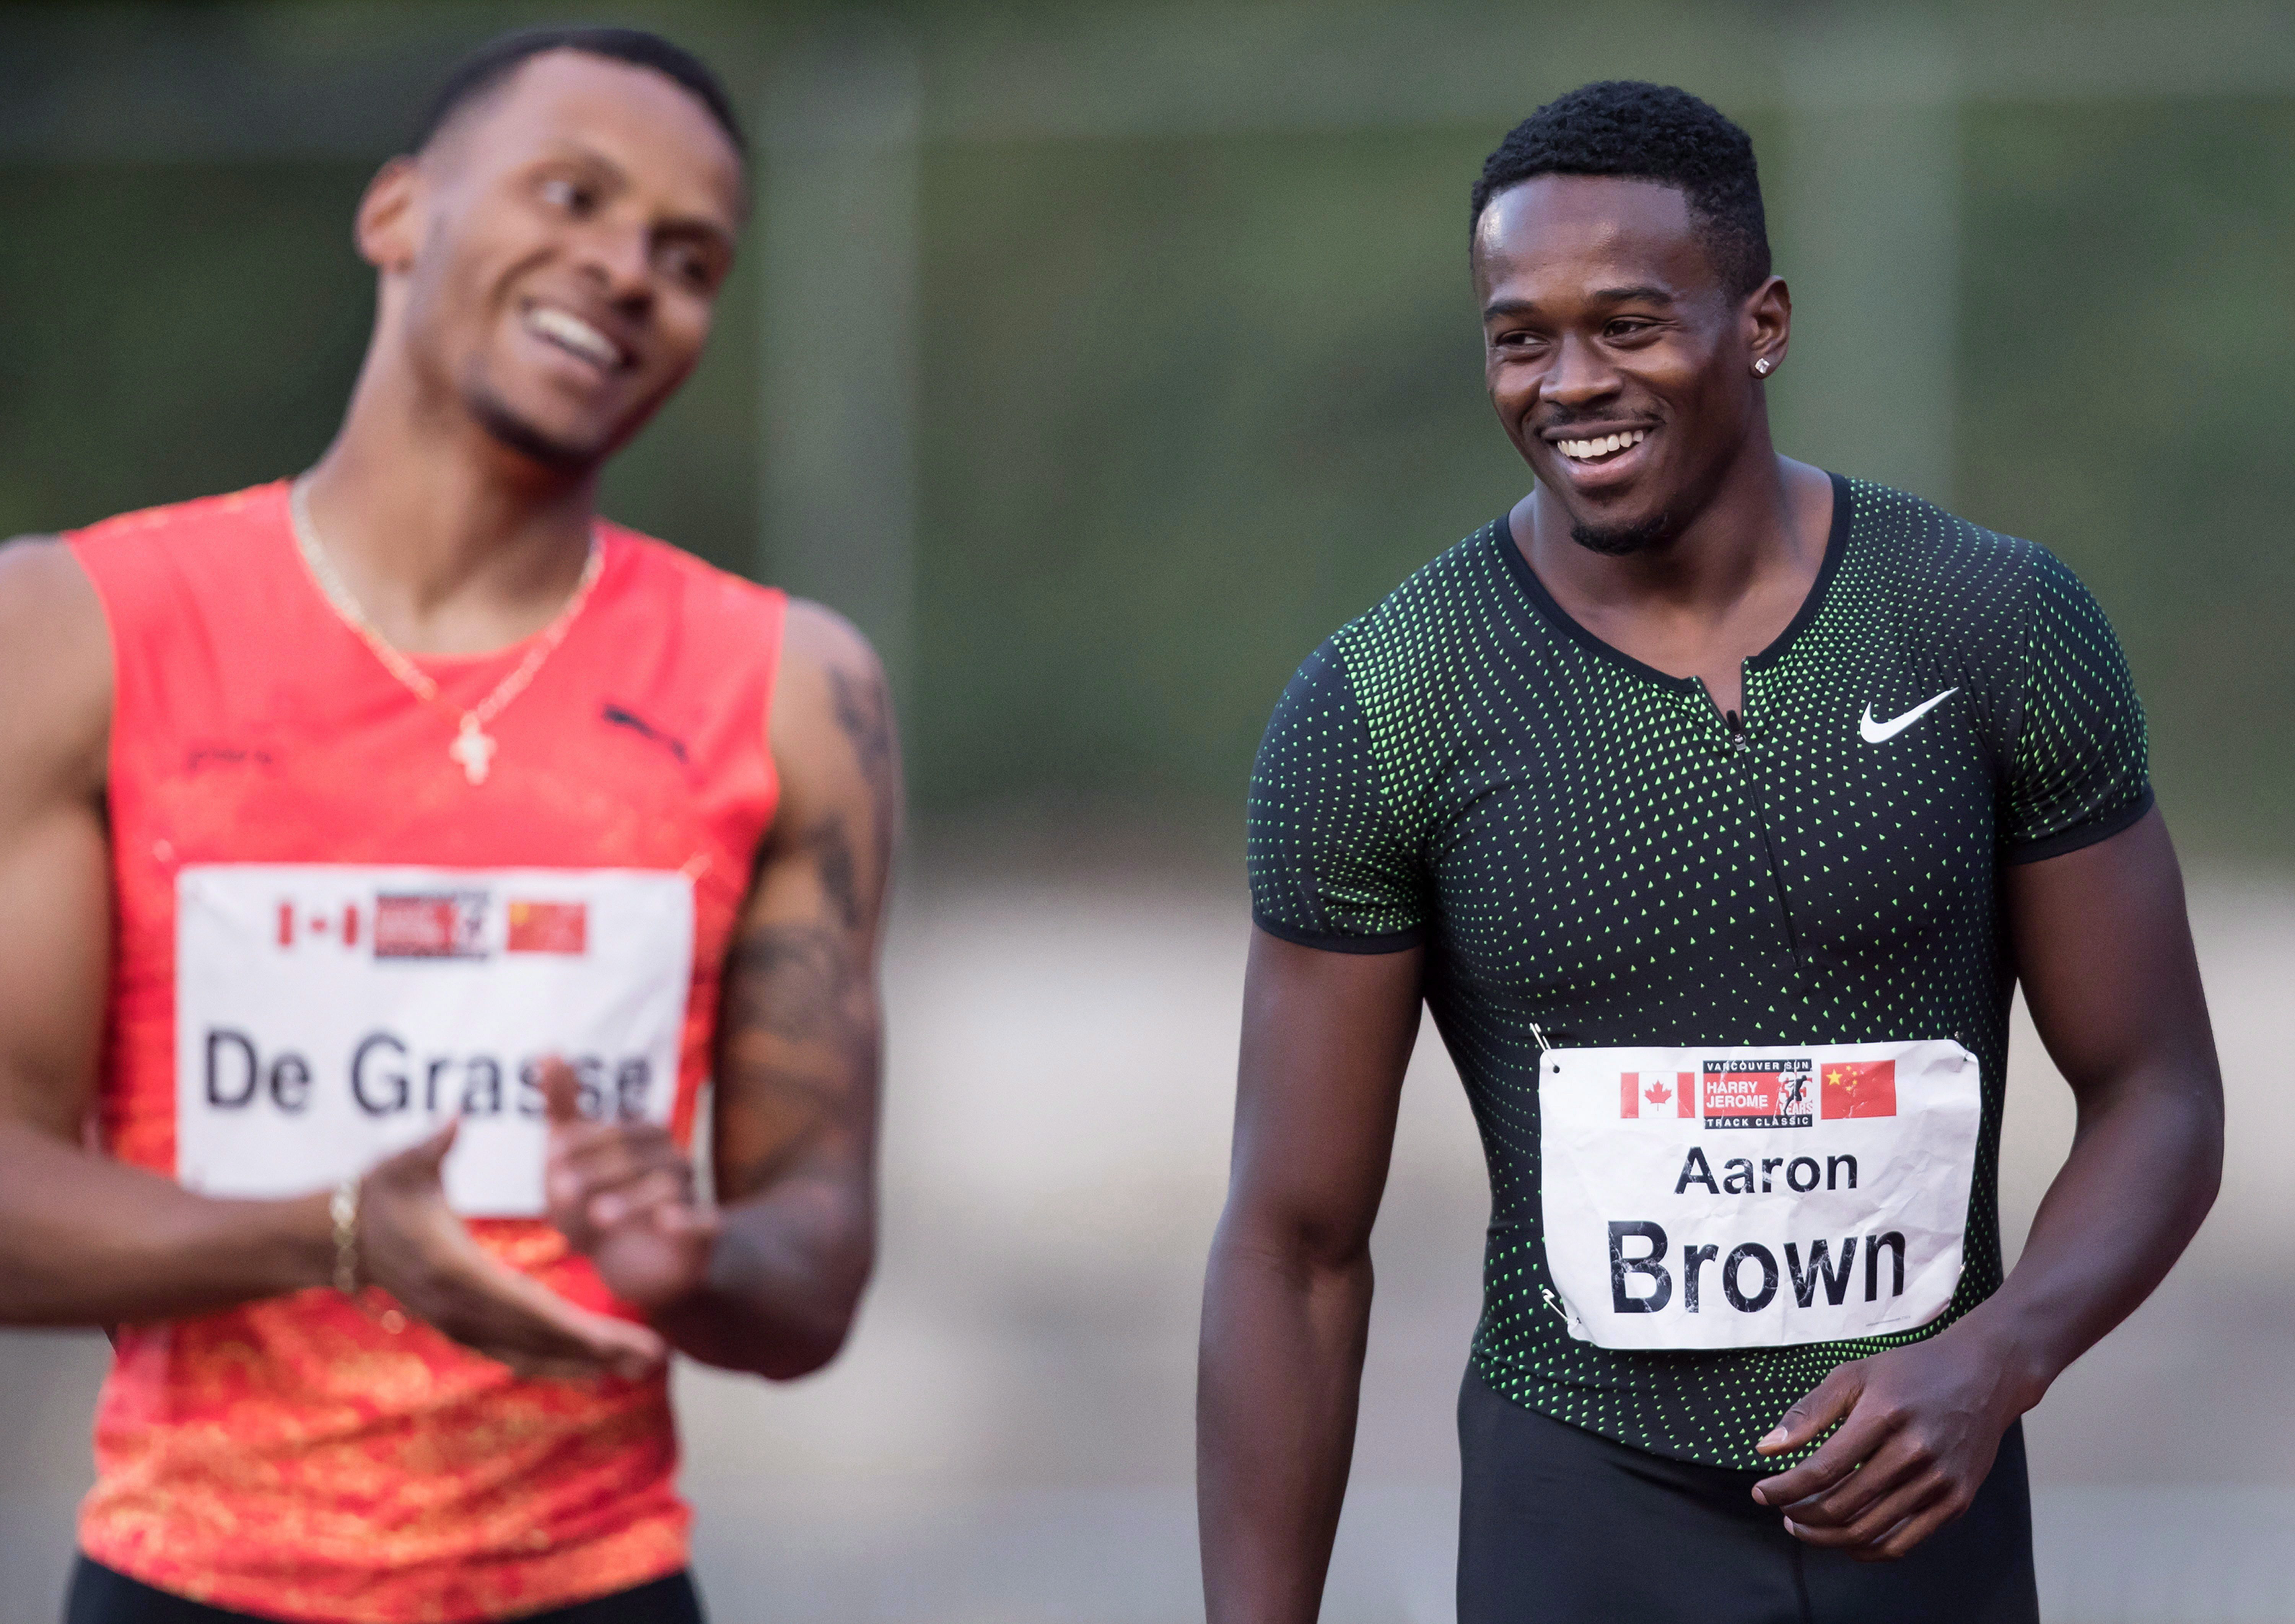 Aaron Brown and Andre De Grasse laugh together